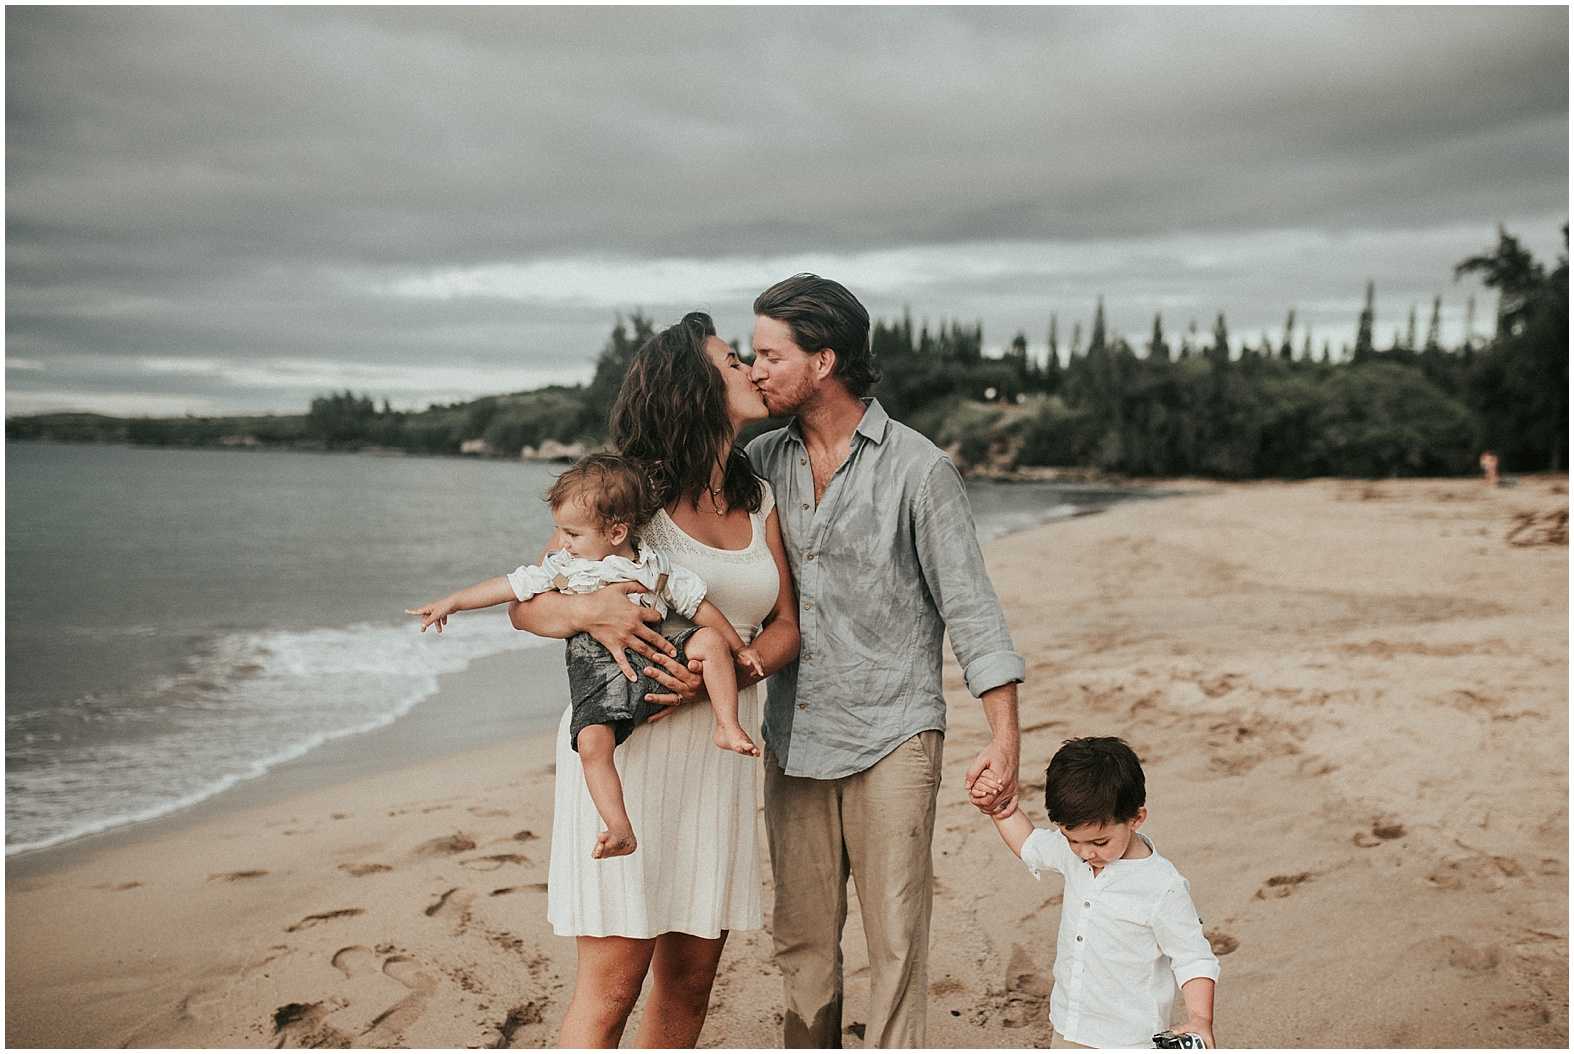 Maui family photography4.jpg